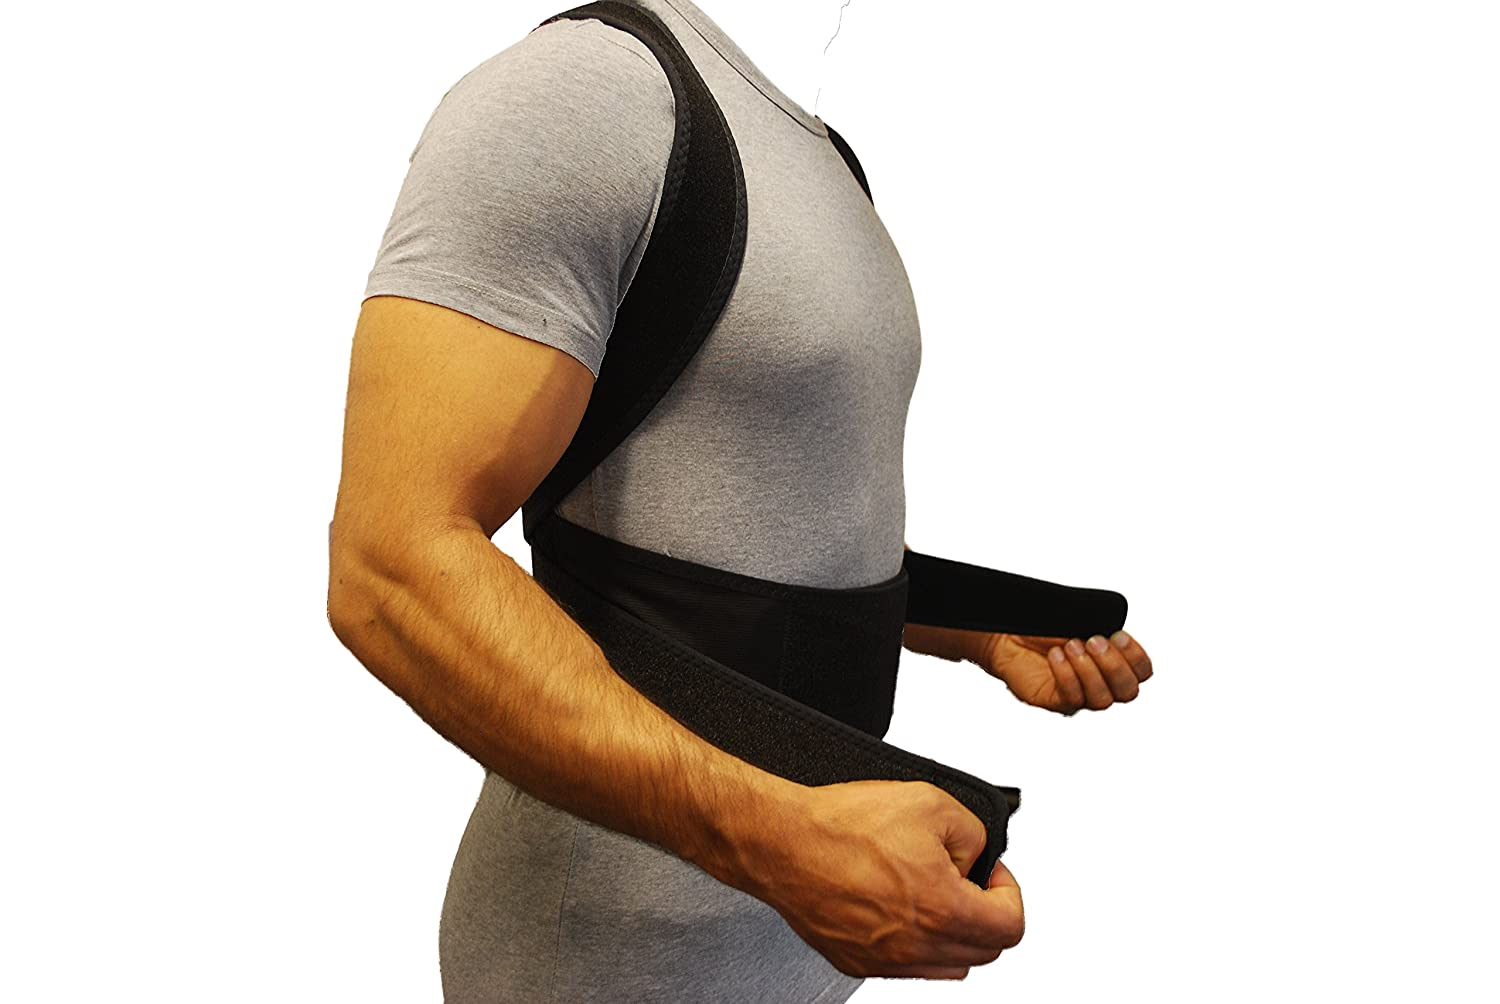 corrector back support highest quality neoprene shoulder back lumbar support breathable adjustable waist belt strap xl n4 amazon co uk